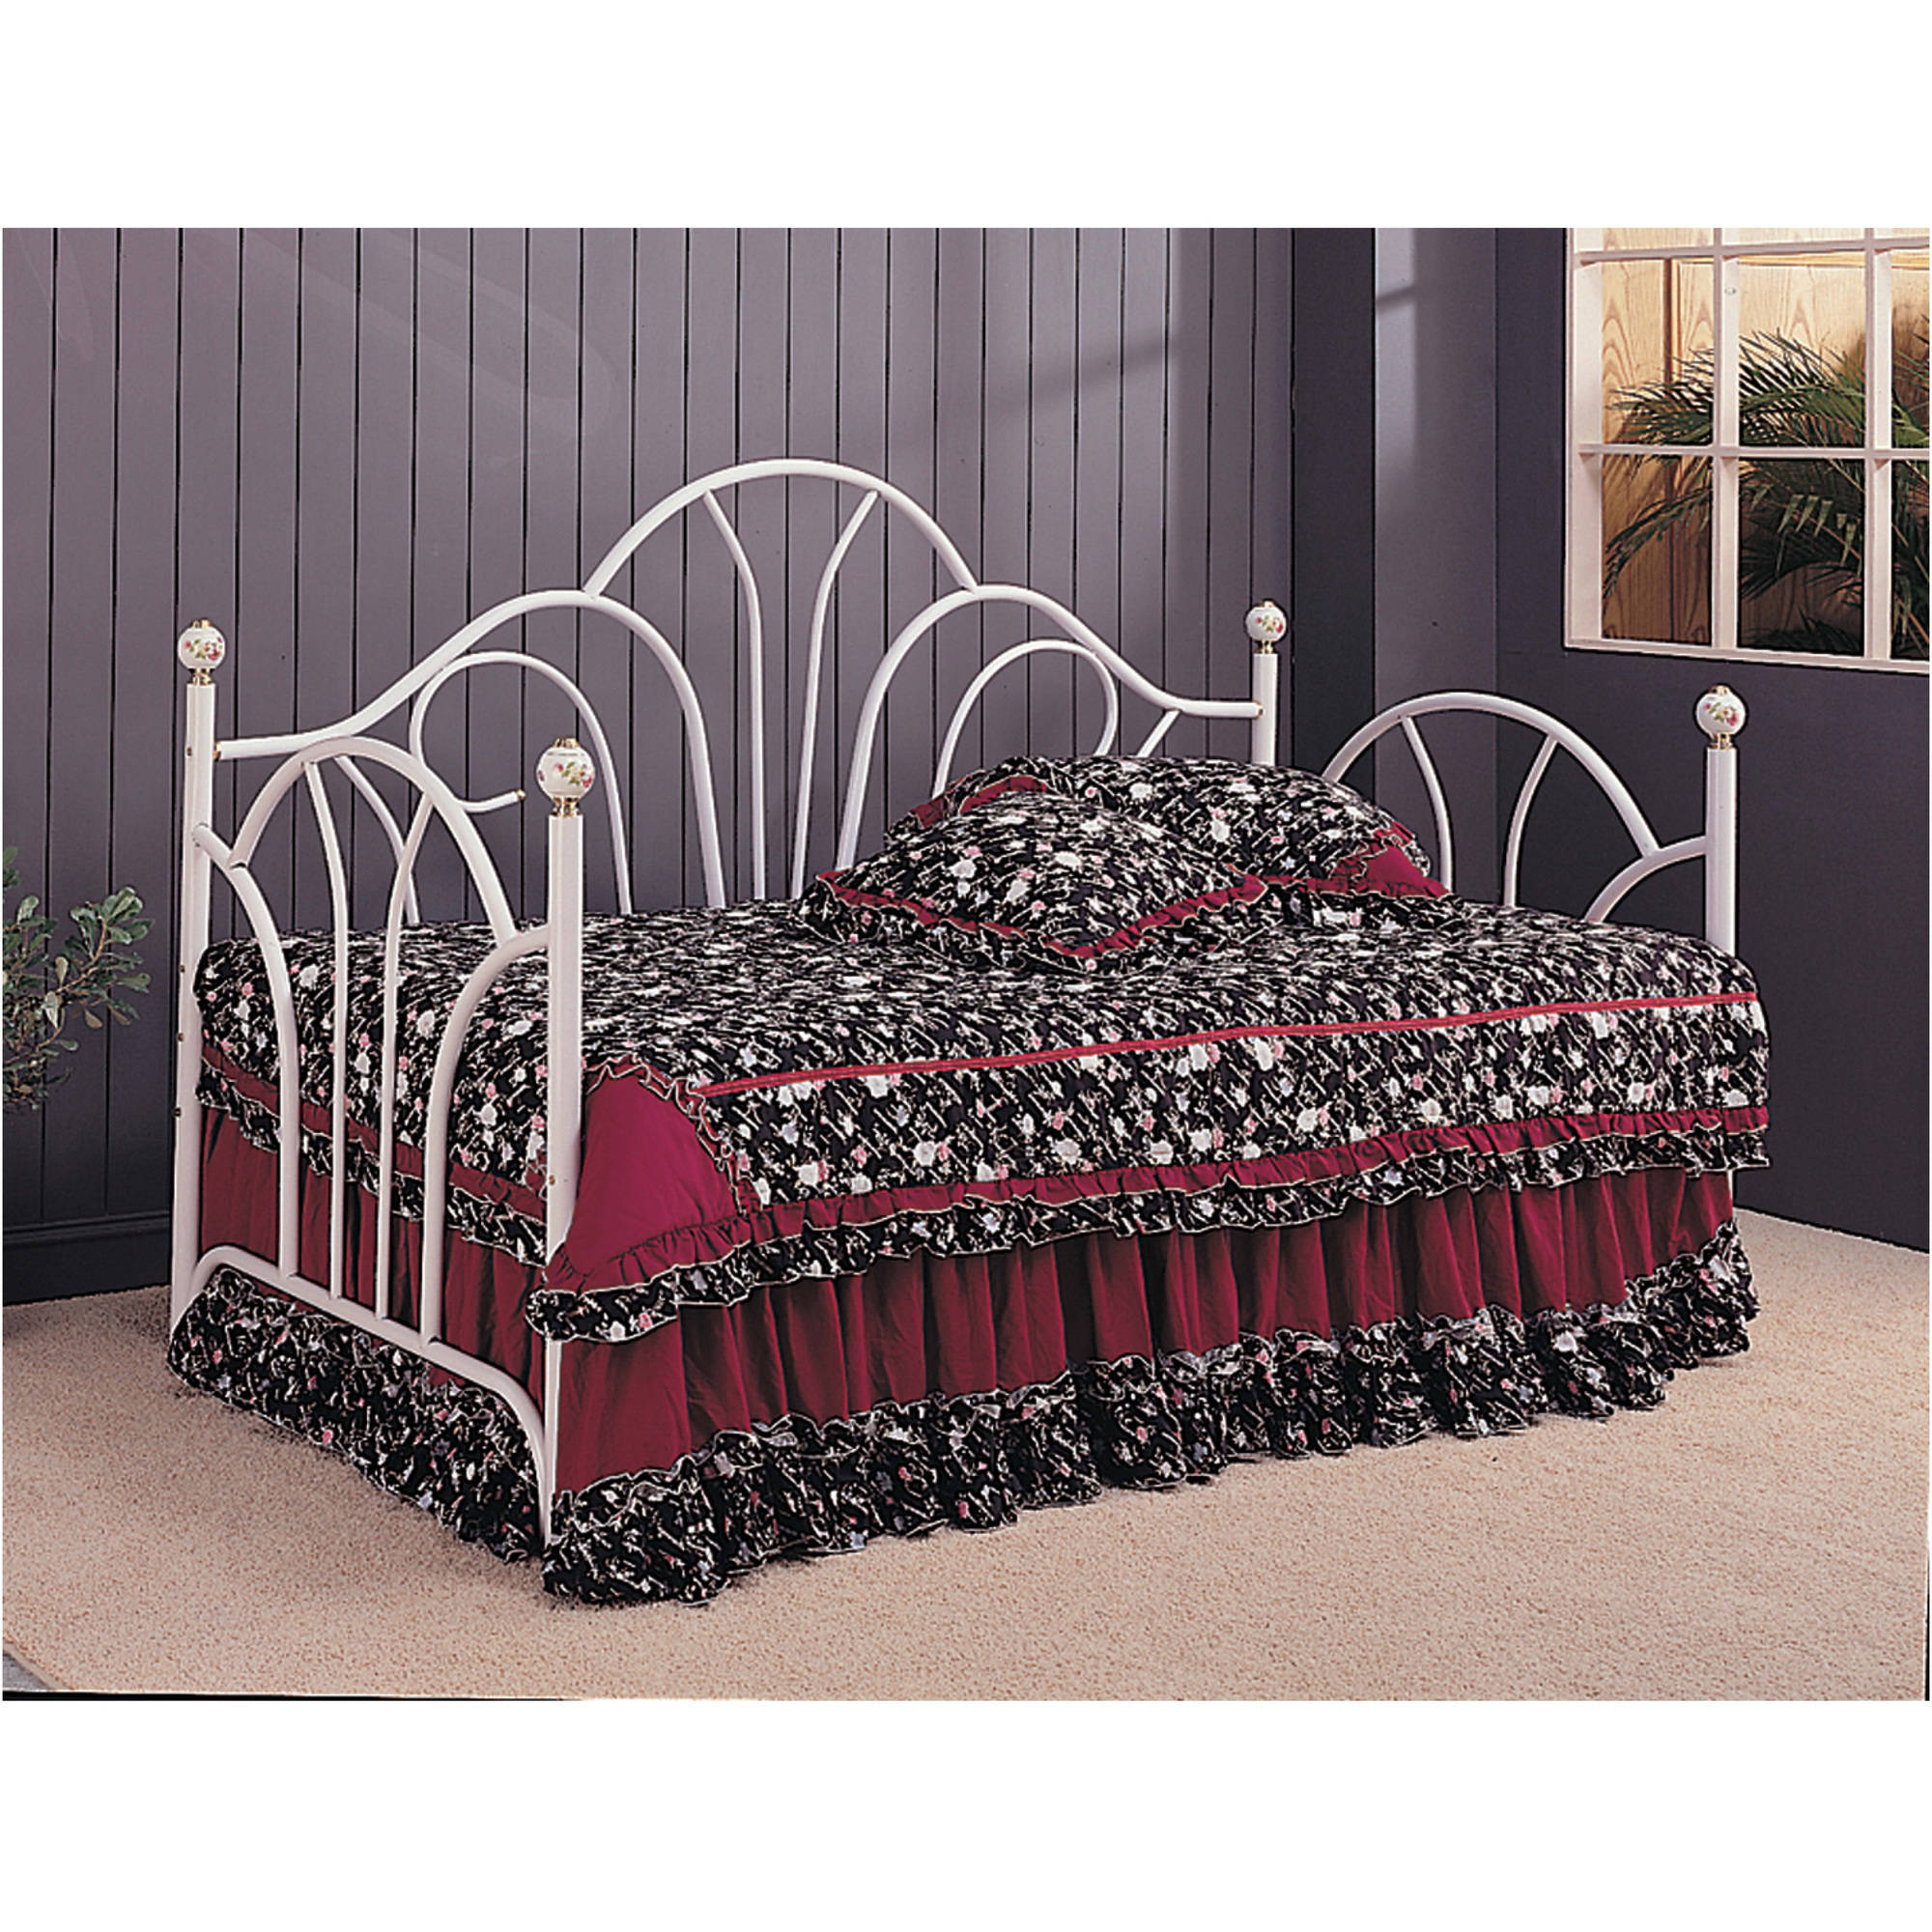 Coaster Company Twin Metal Day Bed Frame, White (link spring sold separately) by Coaster Company